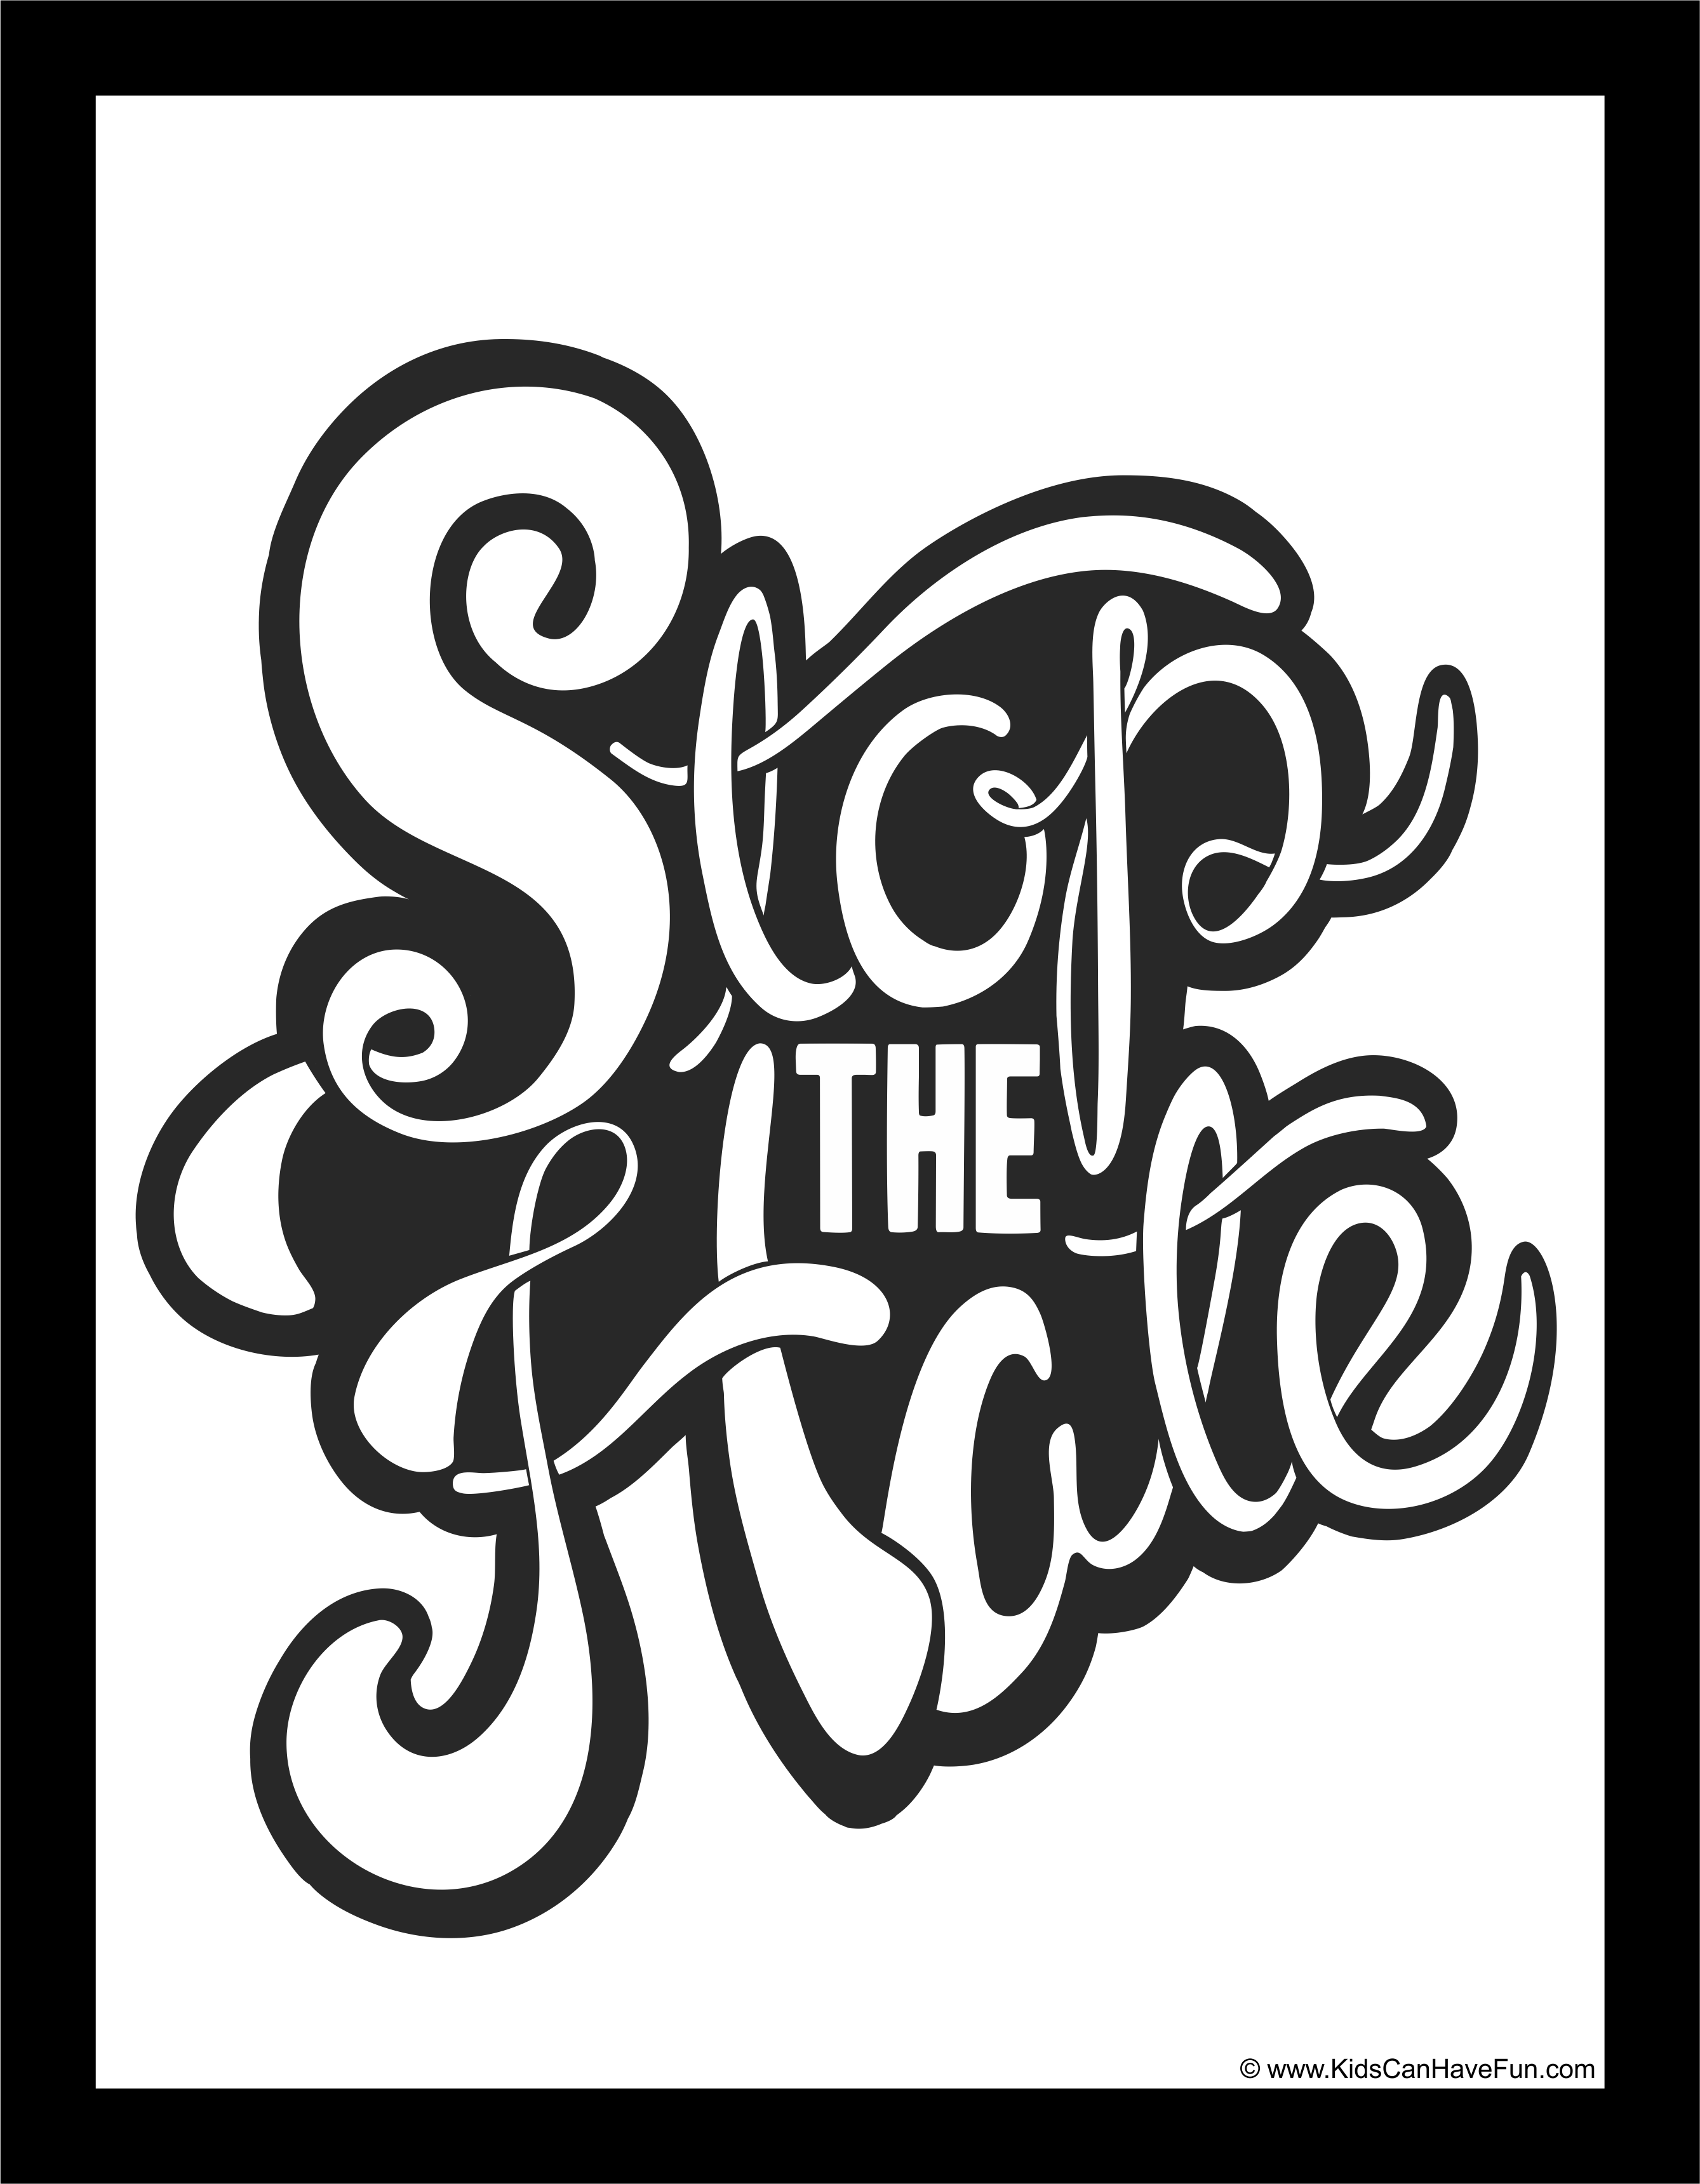 Mixtape drawing movie. Stop the hate poster